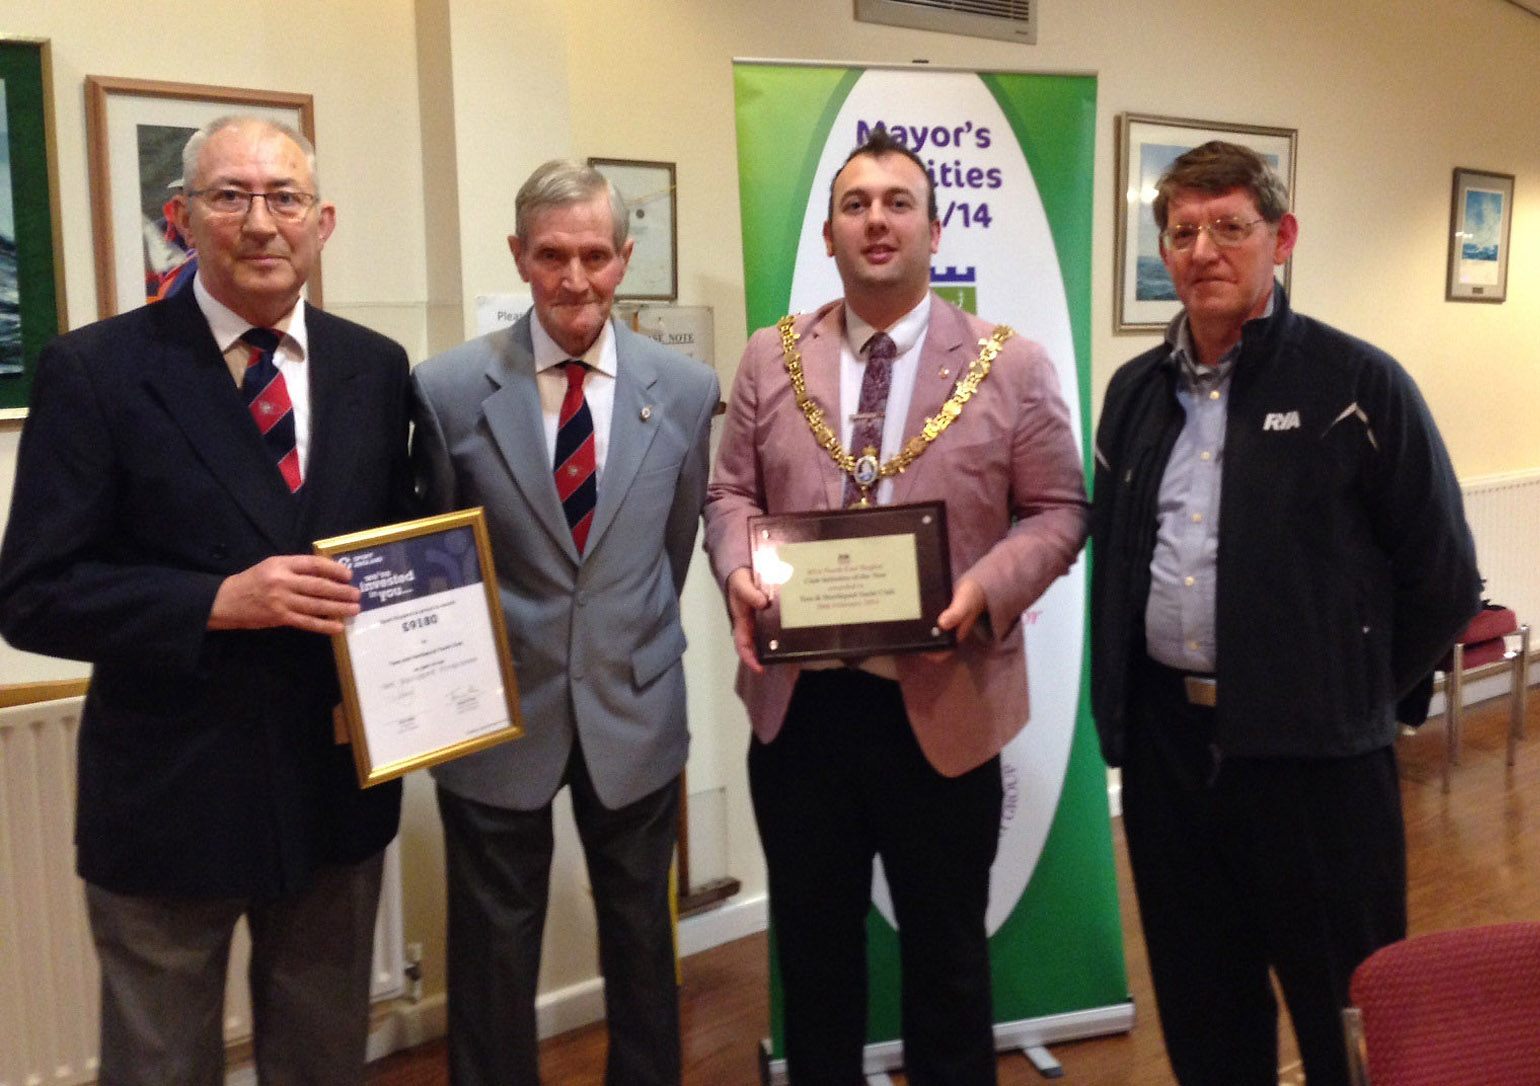 Photo caption: Councillor Stephen Akers-Belcher (third left) presents awards to Barry Hughes (left) and Tommy Richardson (second left)